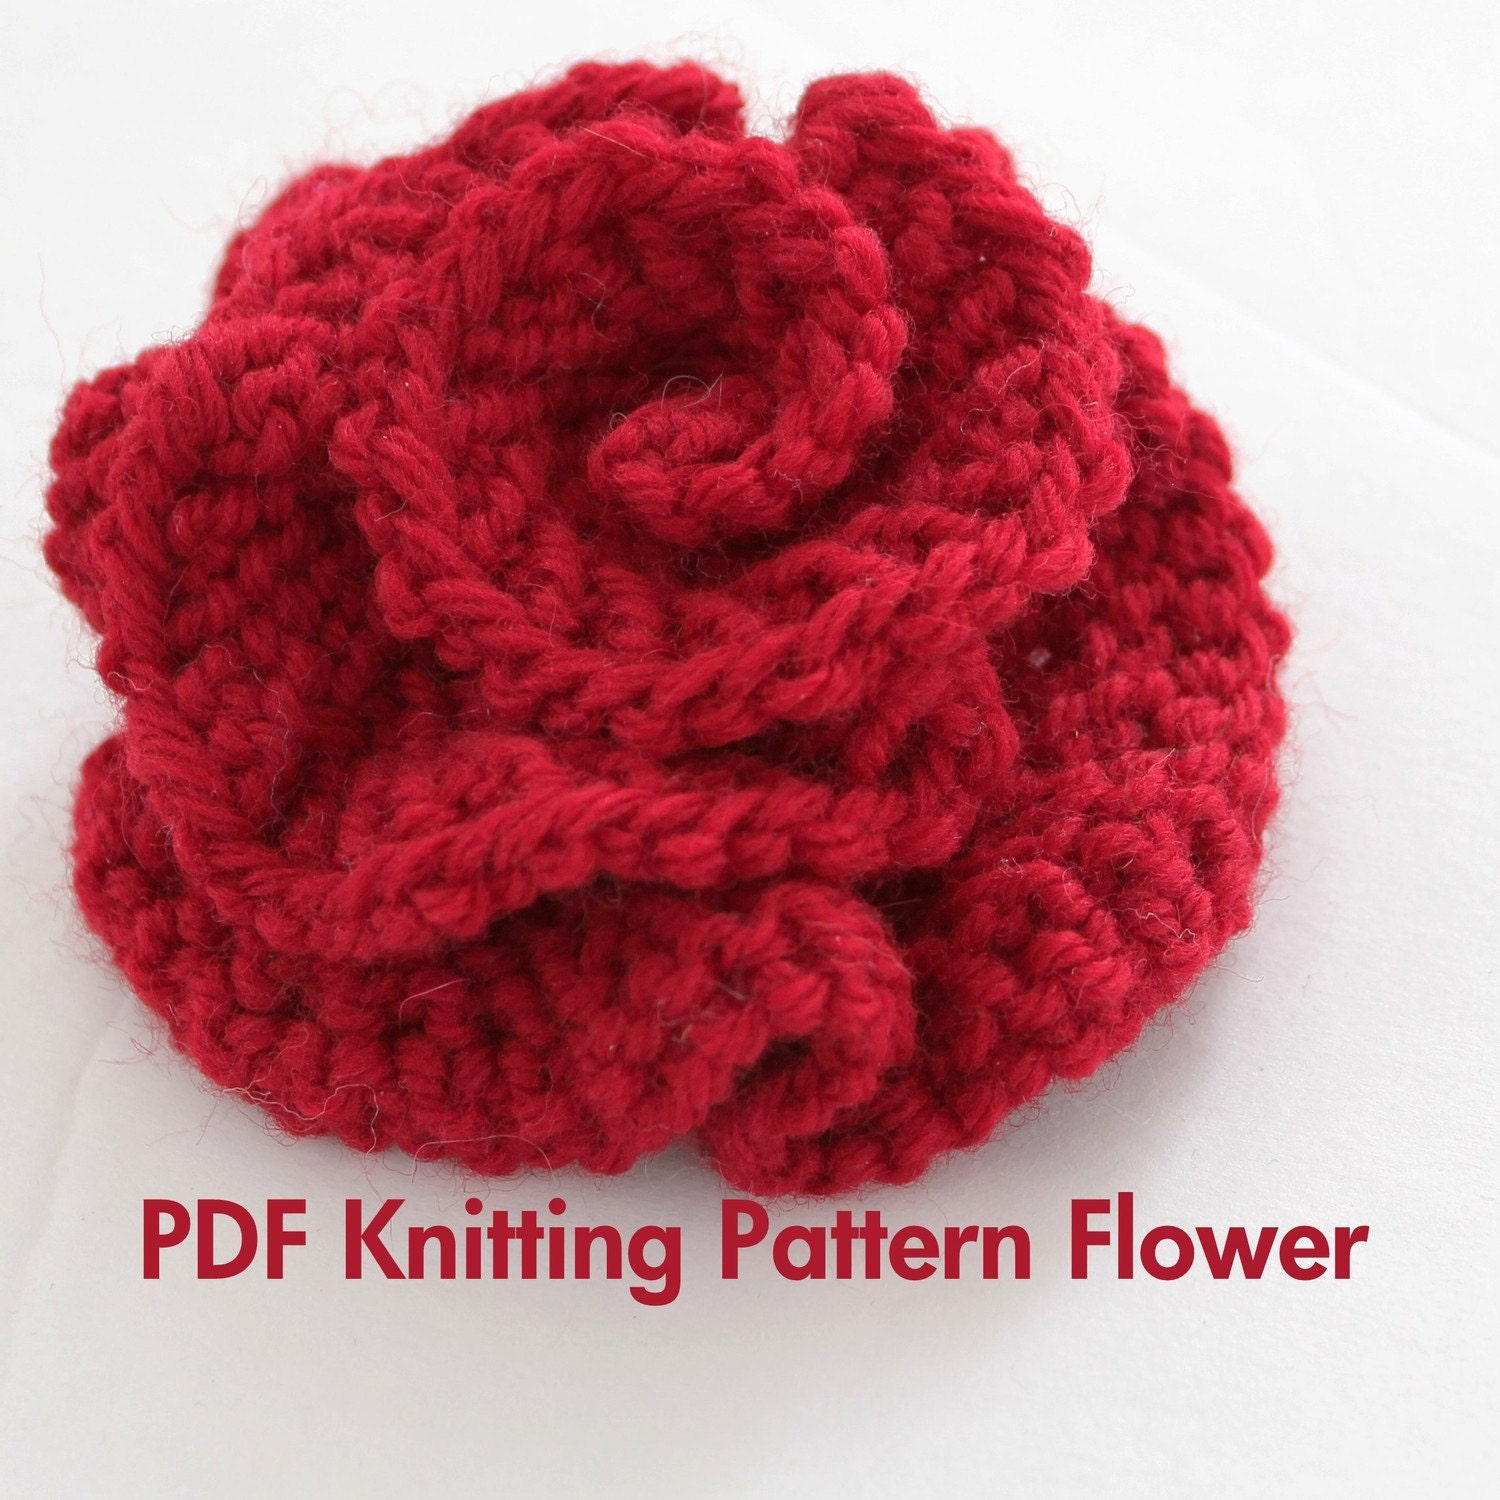 Knitting Flower Patterns Browse Patterns